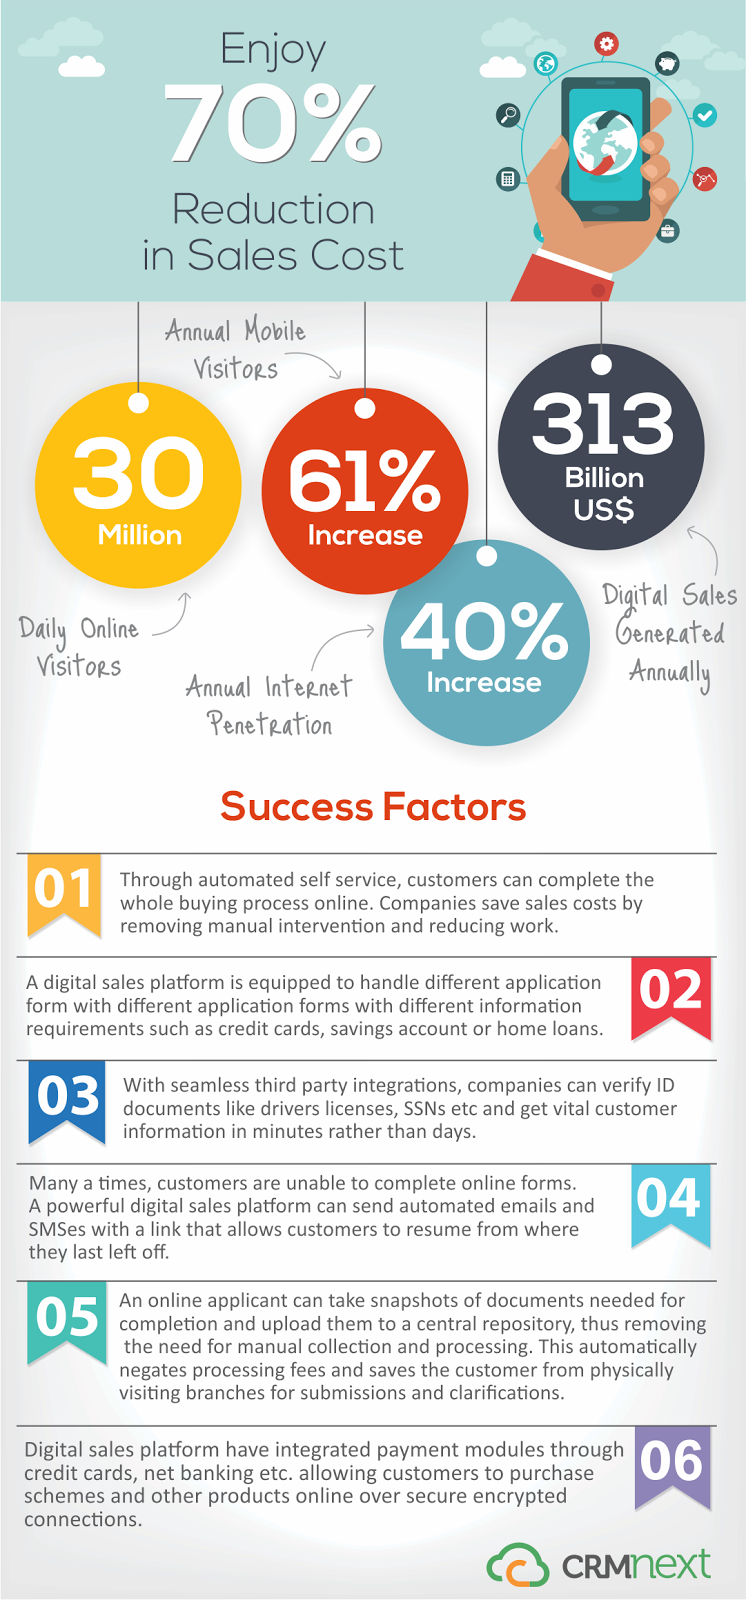 how to reduce sales cost with digital sales platform